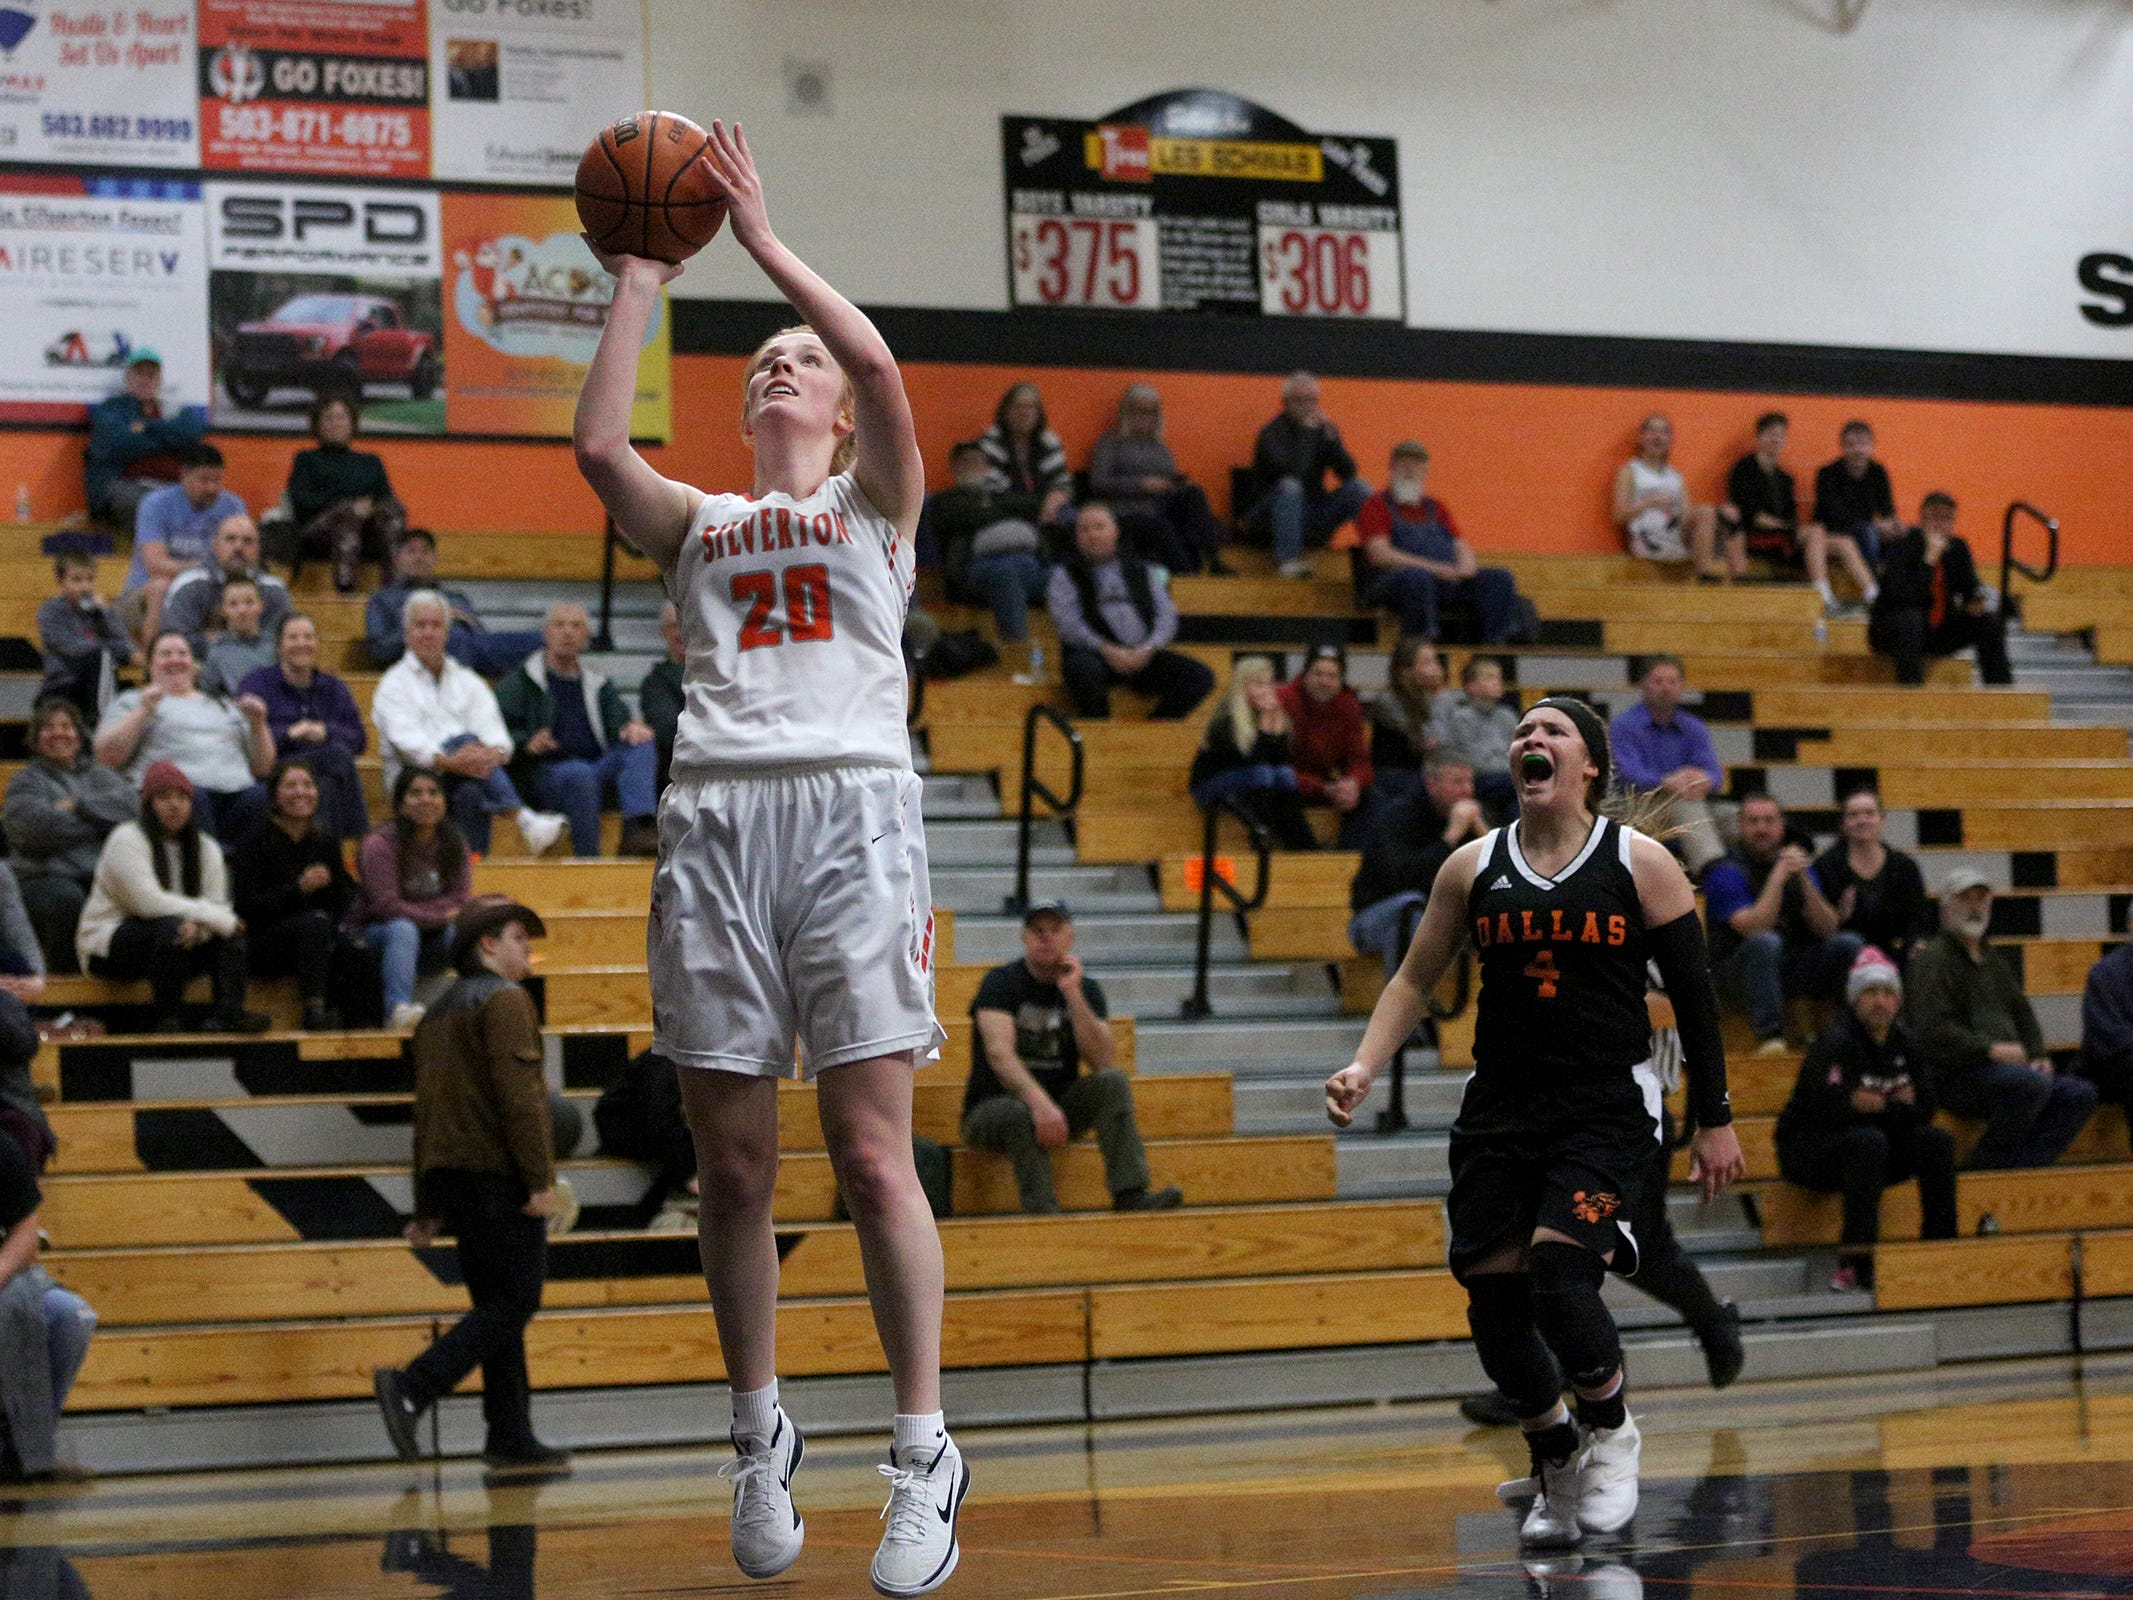 Junior Riley Traeger (20) attempts a layup during the Dallas High School vs. Silverton High School girls basketball game in Silverton on Tuesday, Dec. 8, 2019.